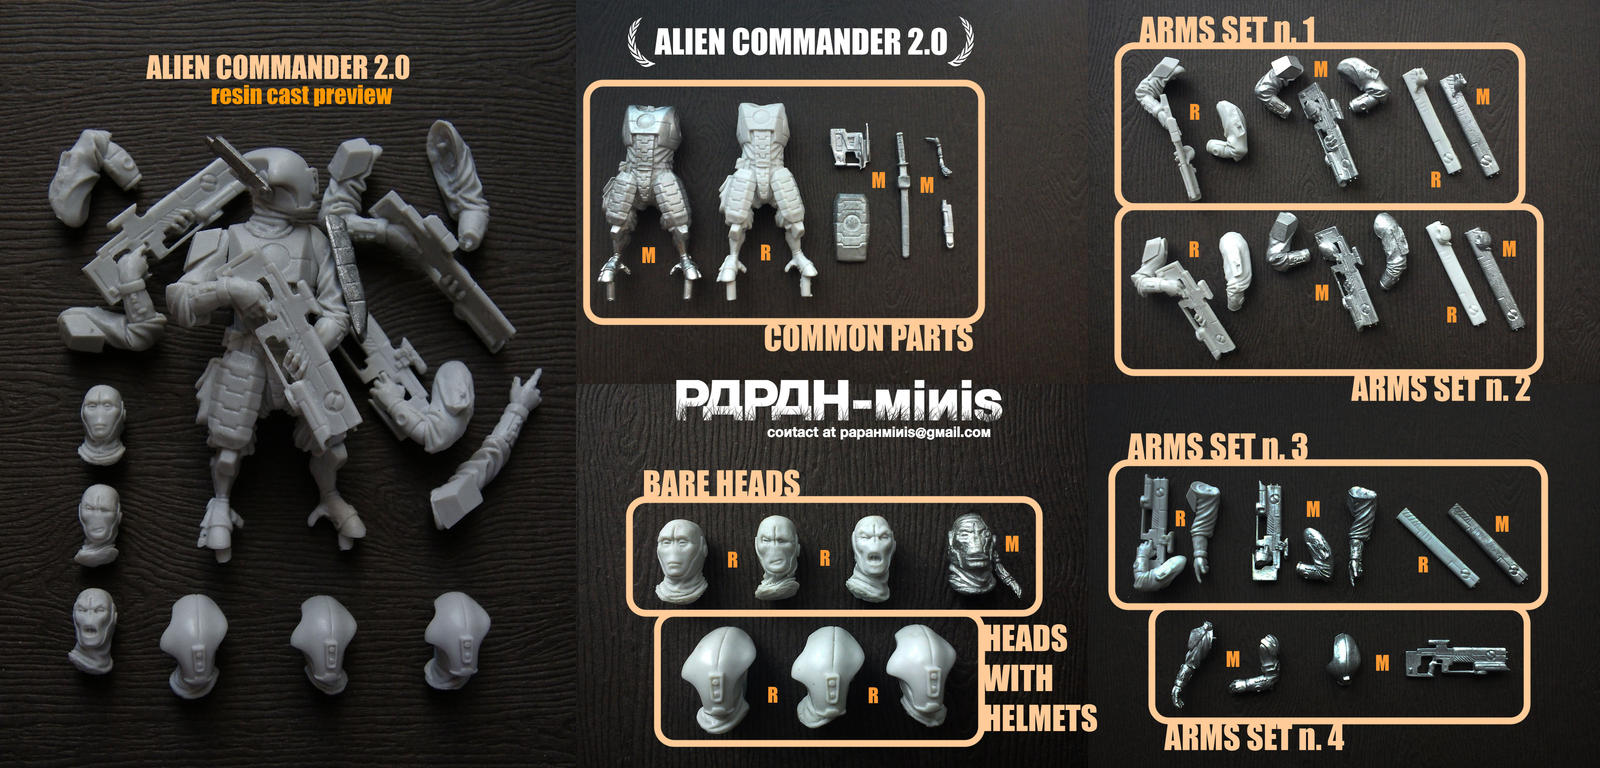 Alien Commander 2.0 metal and resin casts, 56mm by Papah-minis